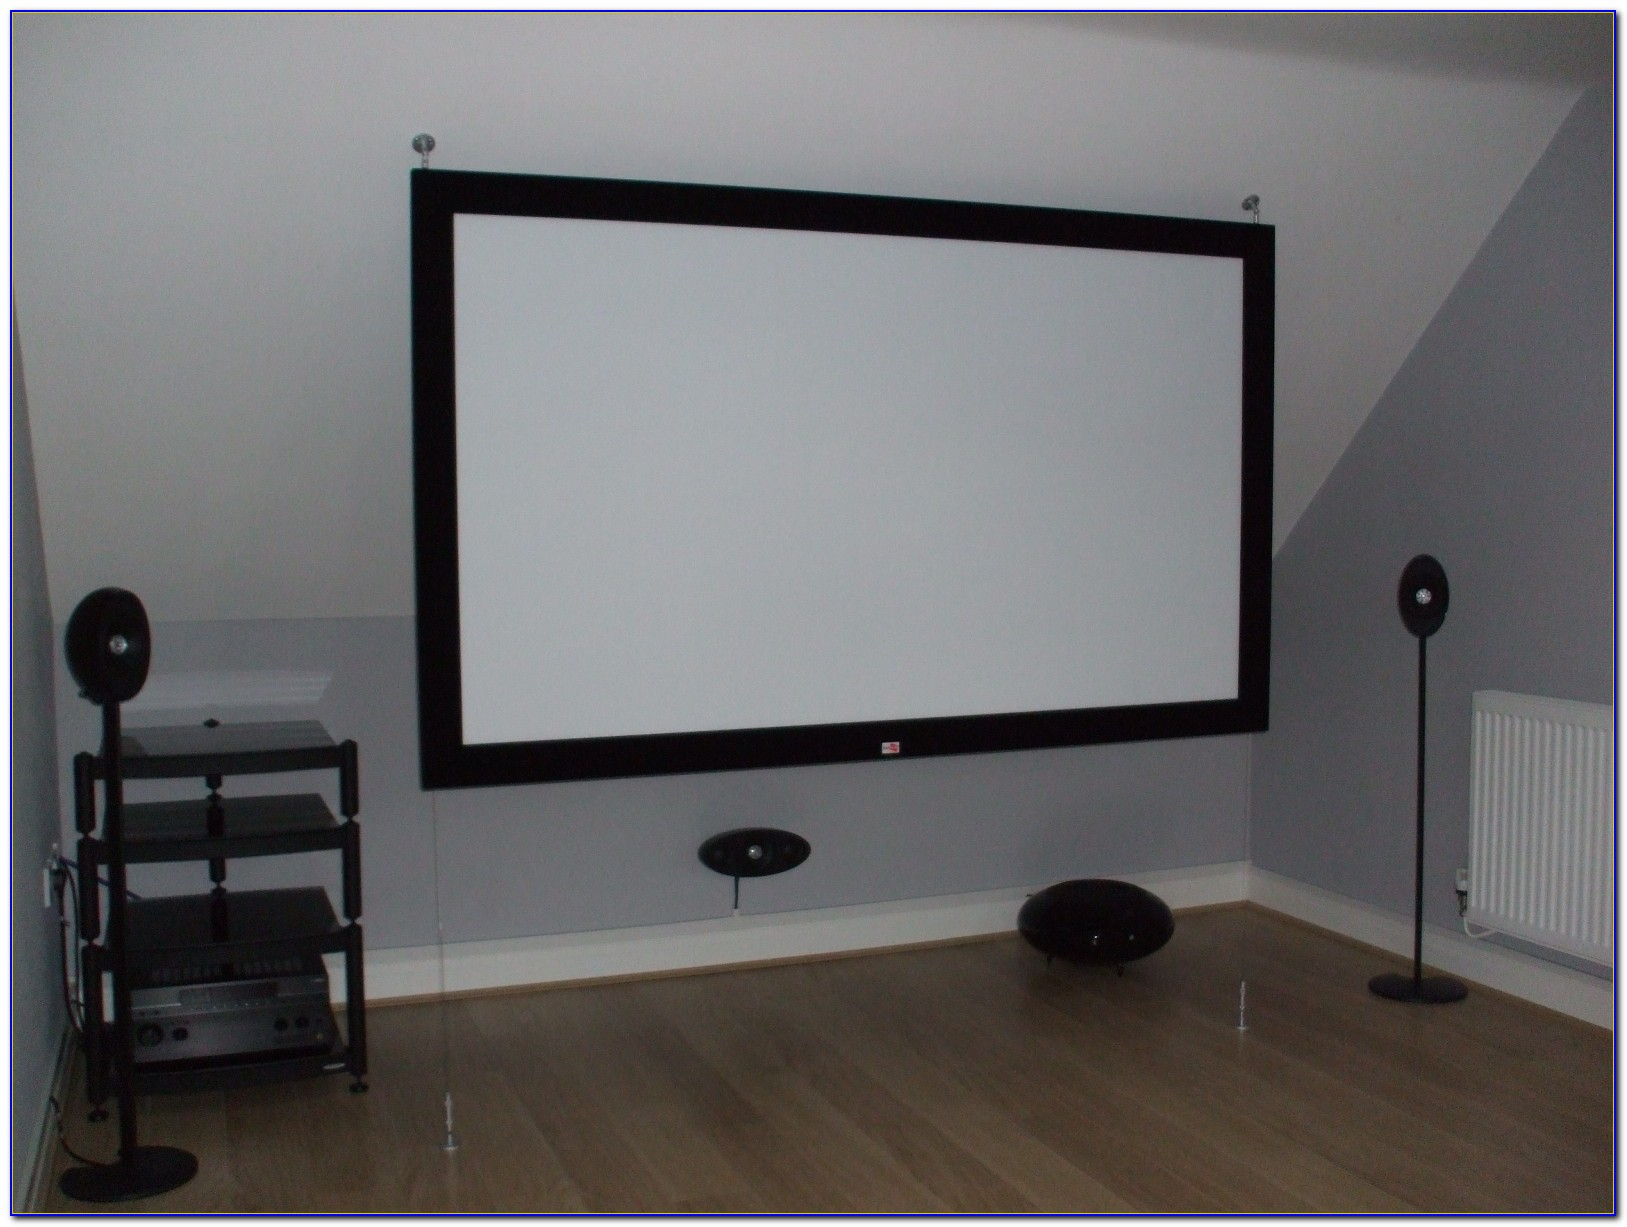 Hanging Fixed Projector Screen From Ceiling